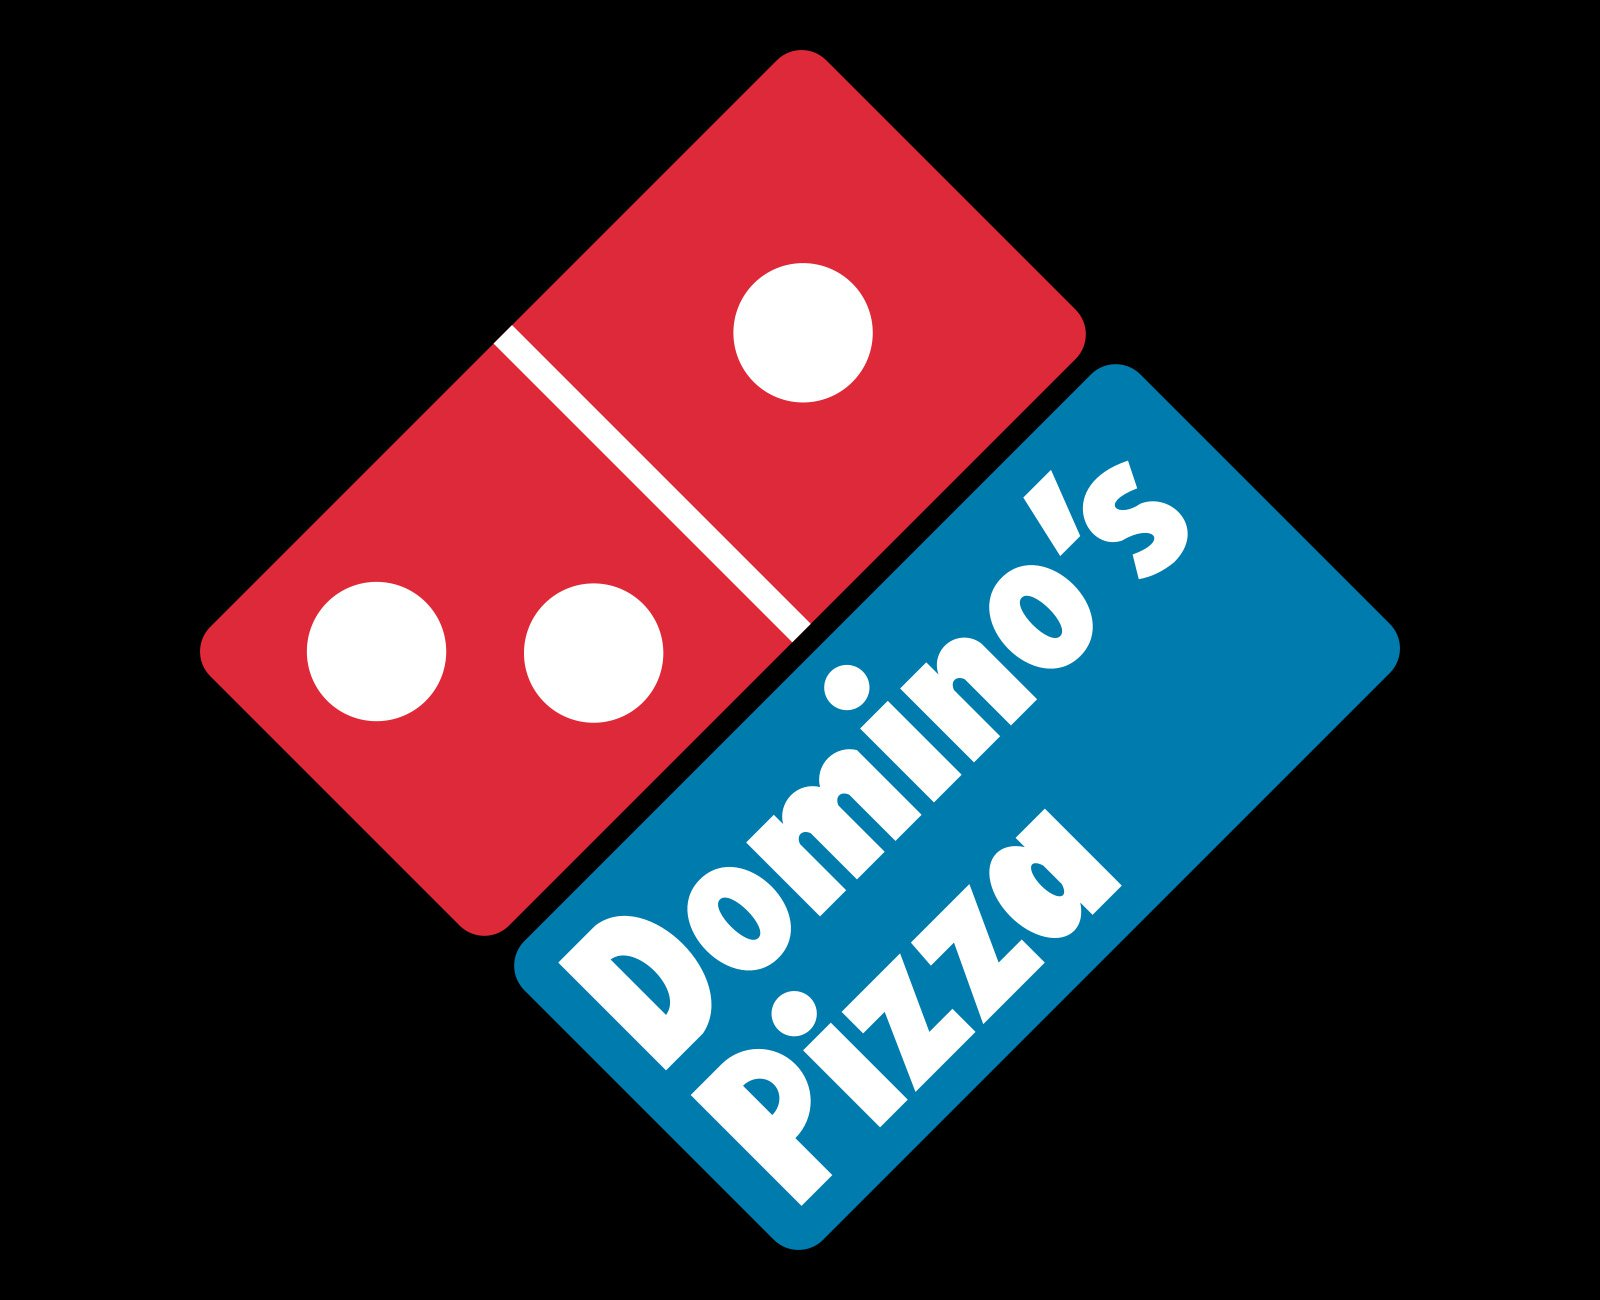 Meaning Domino\'s logo and symbol.